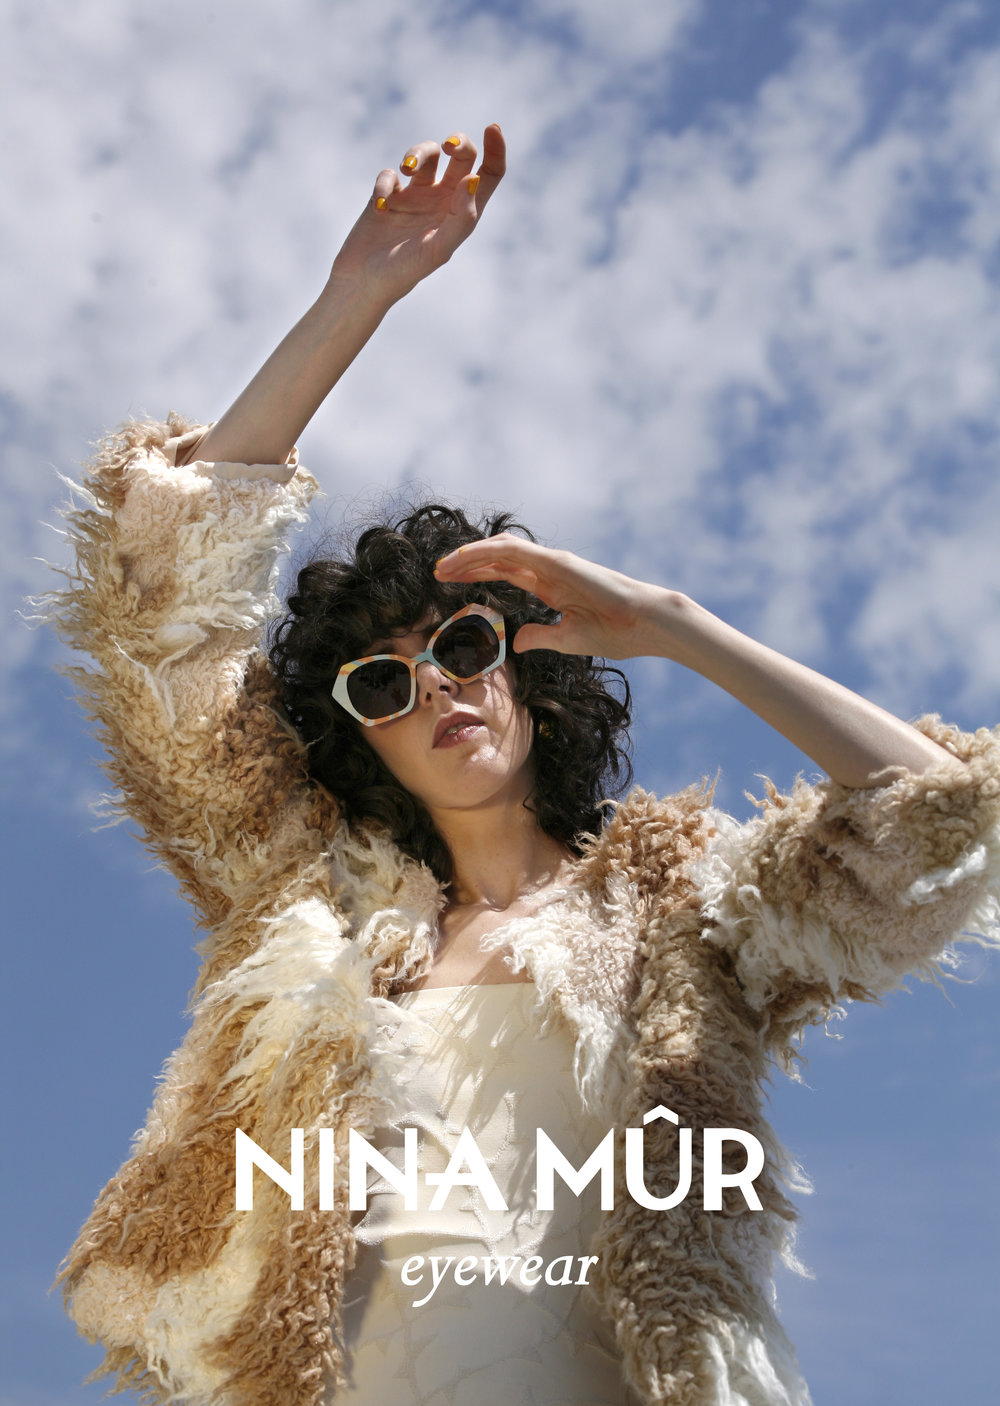 Copy of Copy of Nina Mur Eyewear — Art Direction